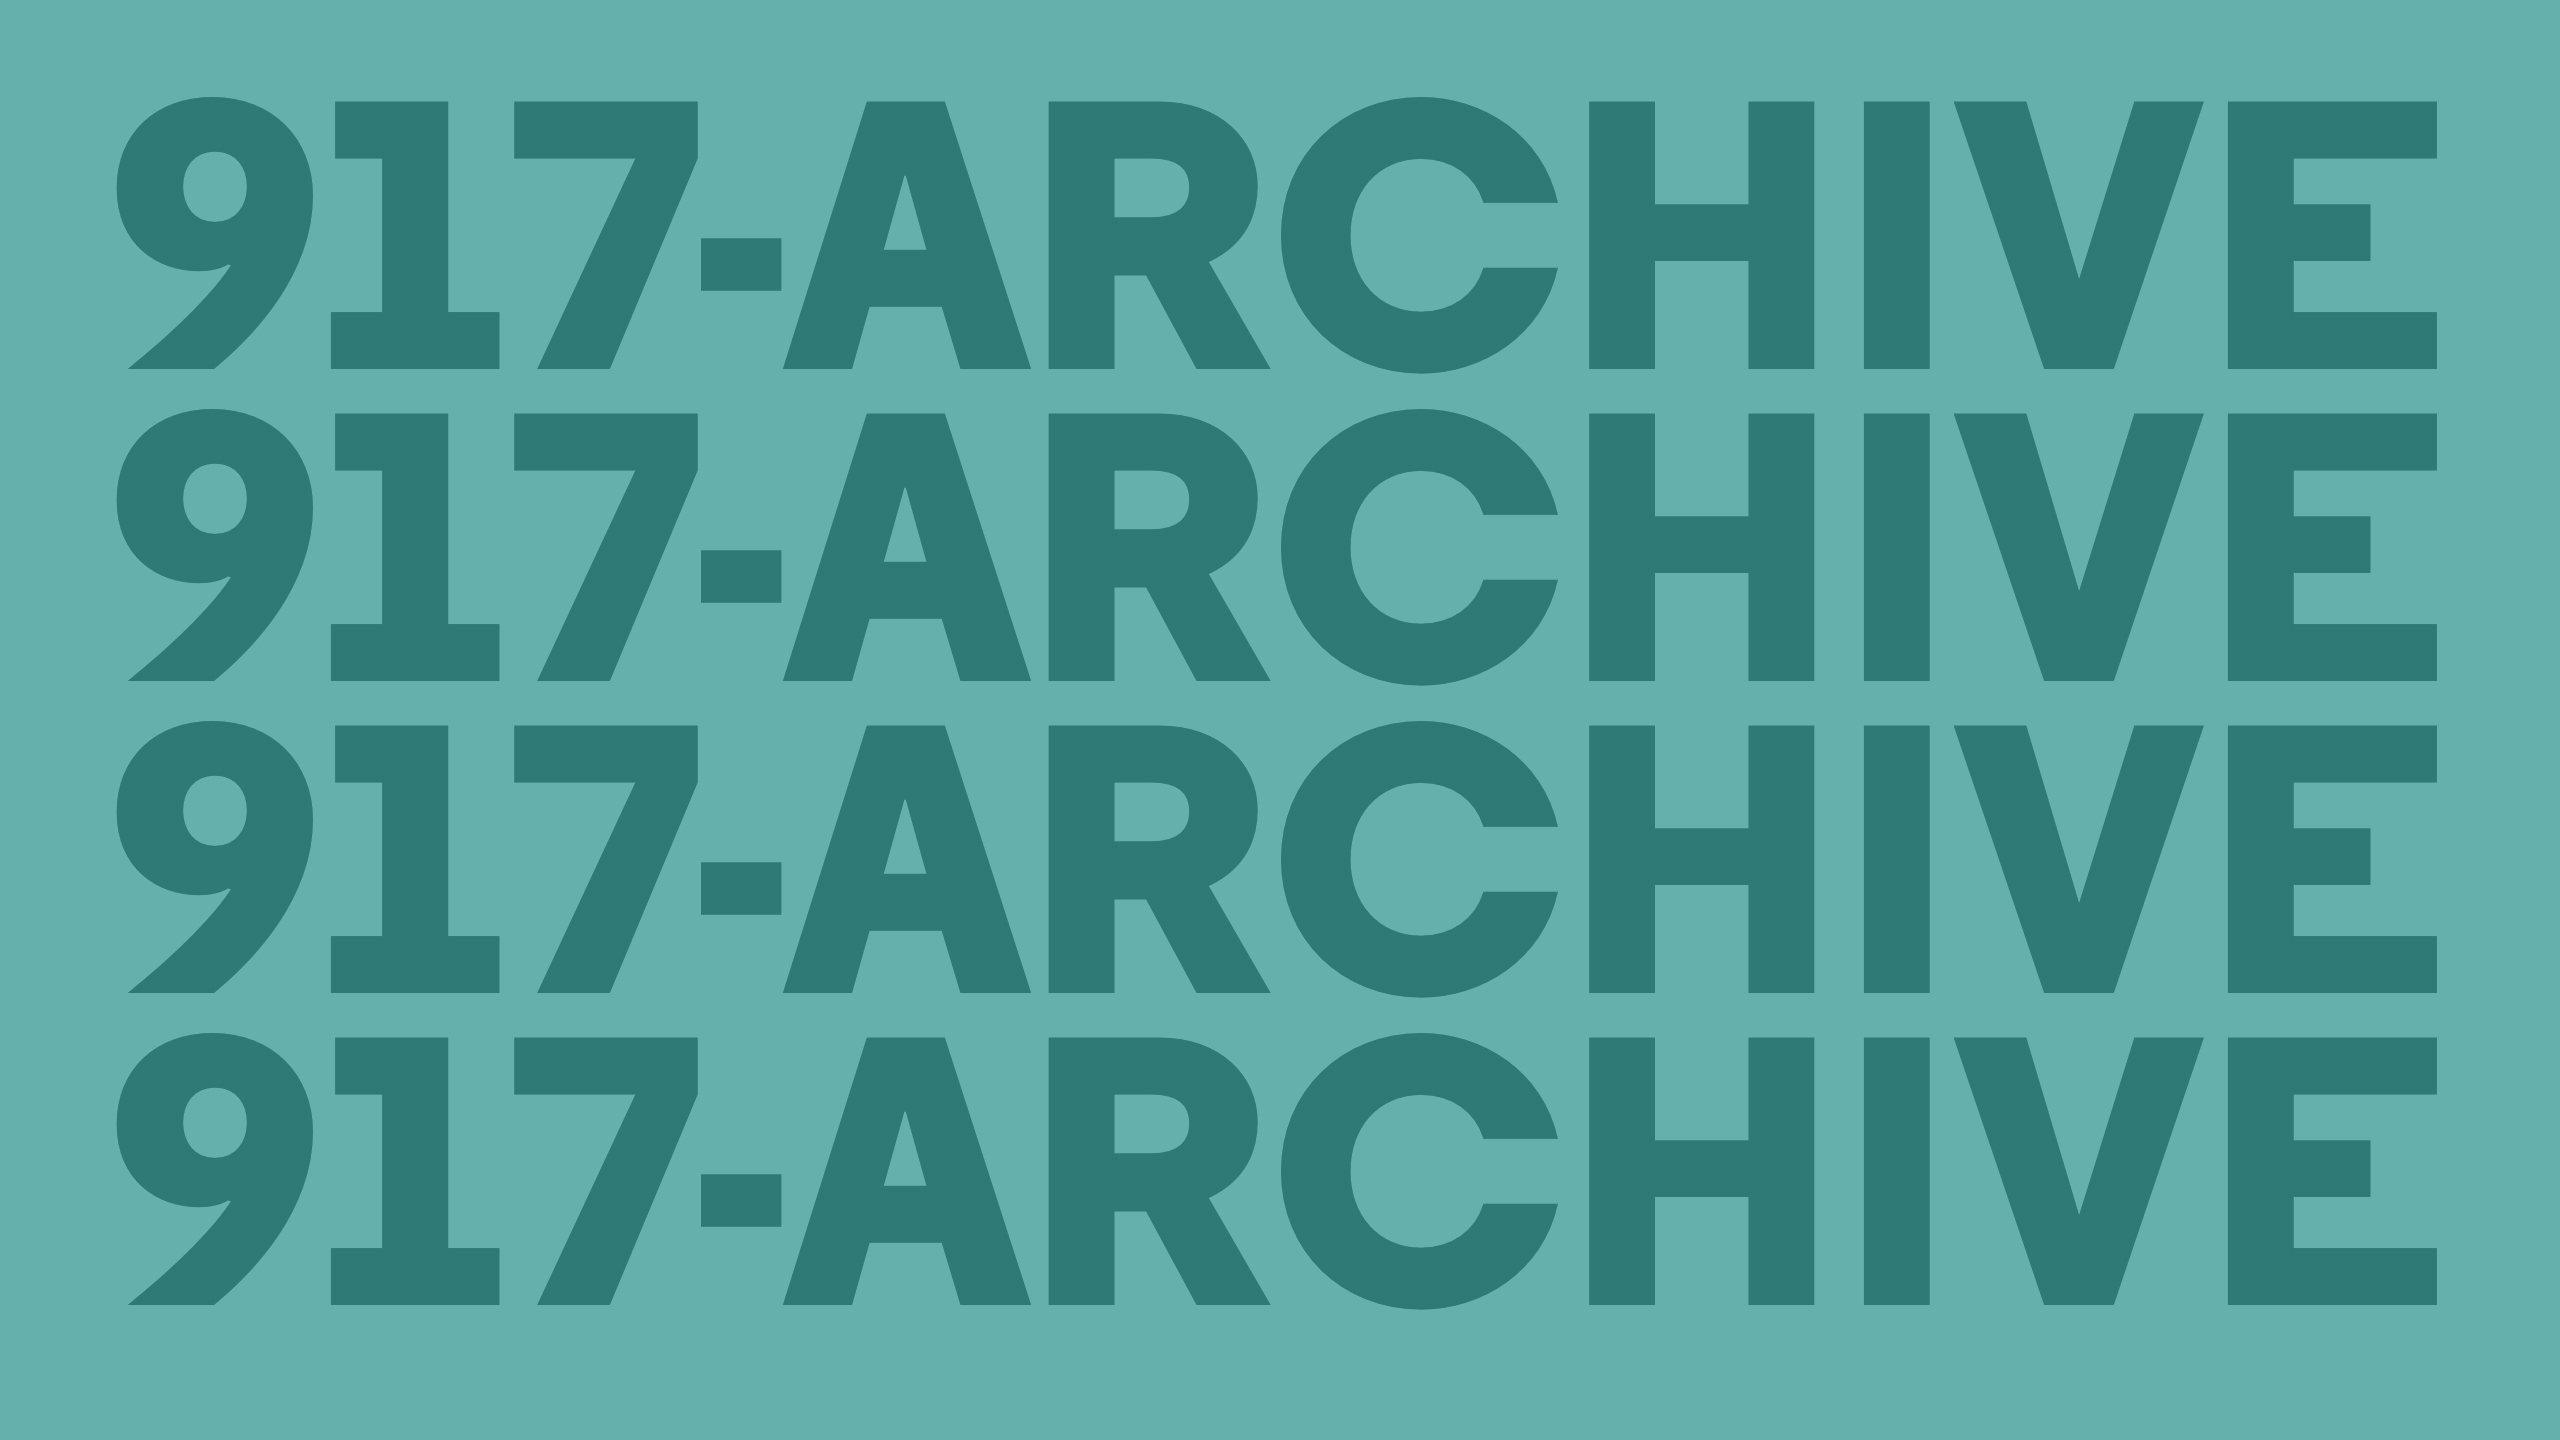 917-ARCHIVE → Catalog Exploration